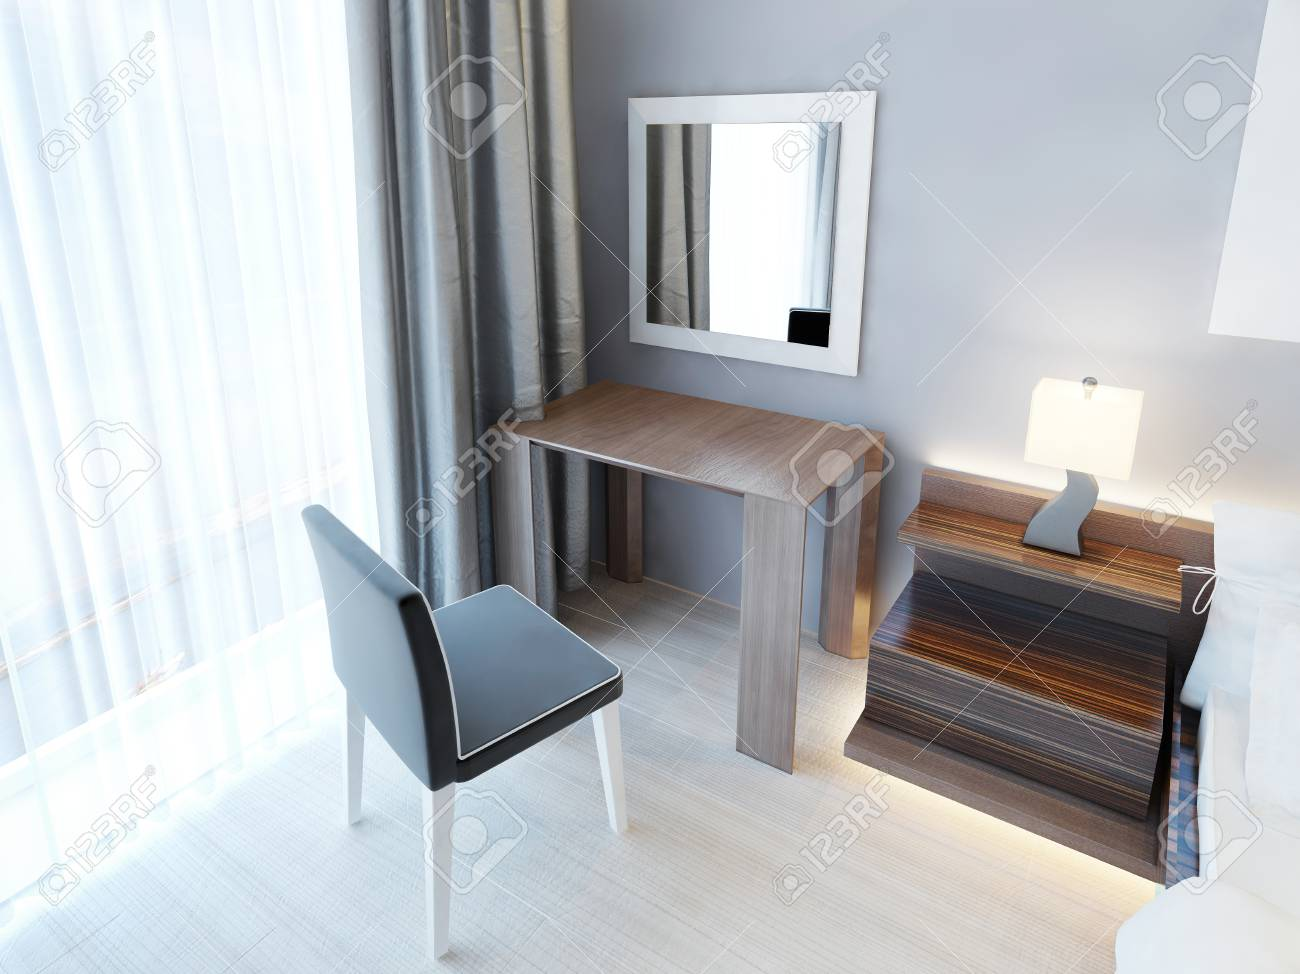 Modern Dressing Table With Chair And Mirror, And A Bedside Nightstand With  Lamp. Bedroom